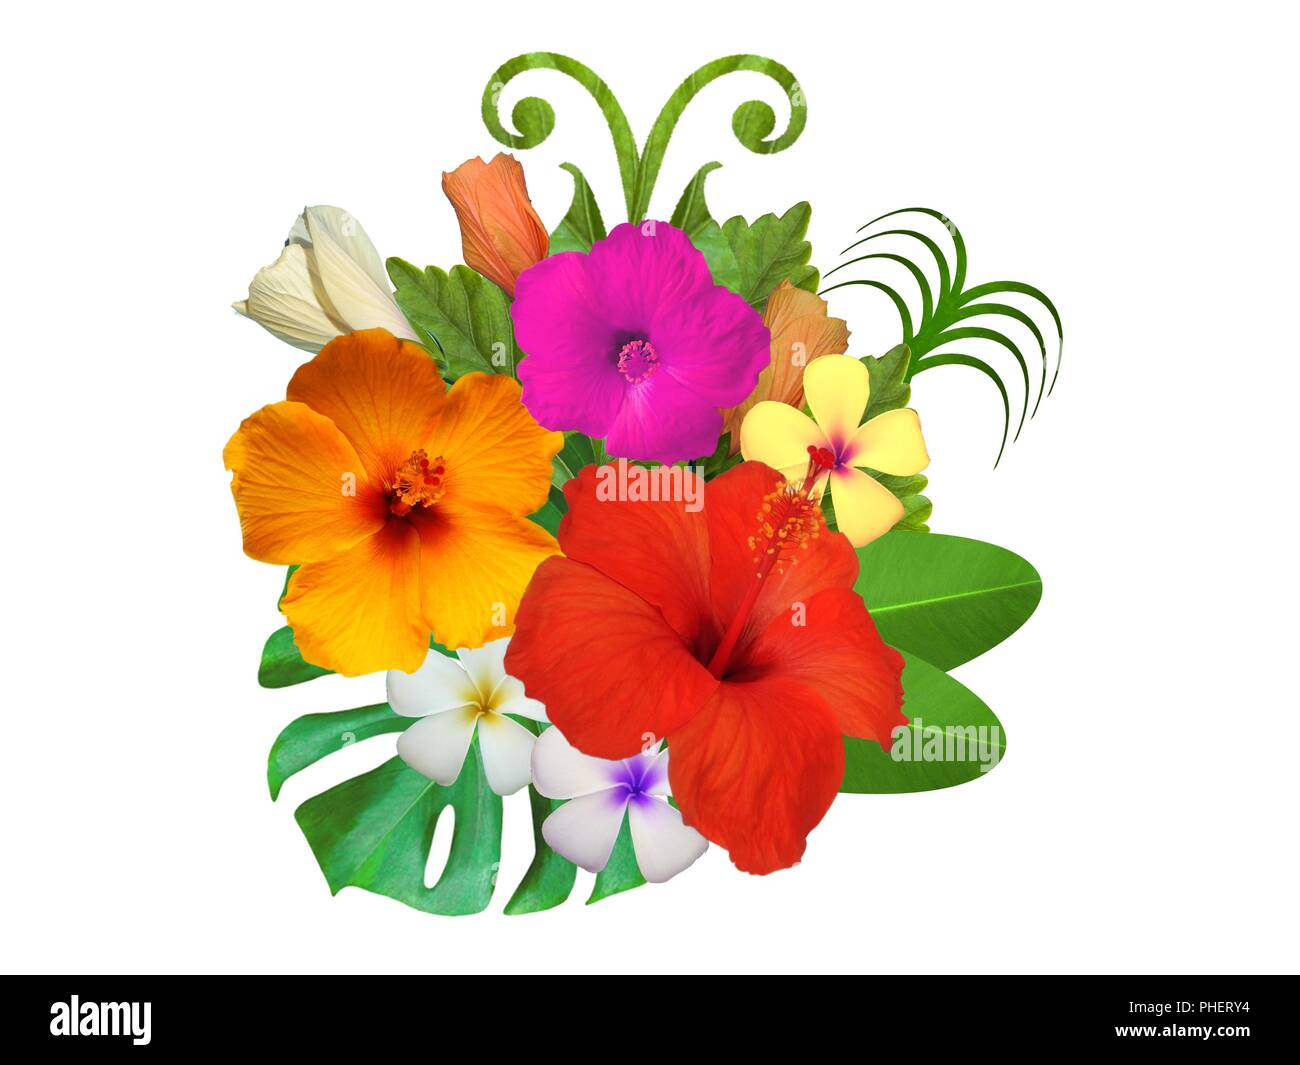 Hibiscus Flowers In Different Colors Stock Photo 217299688 Alamy